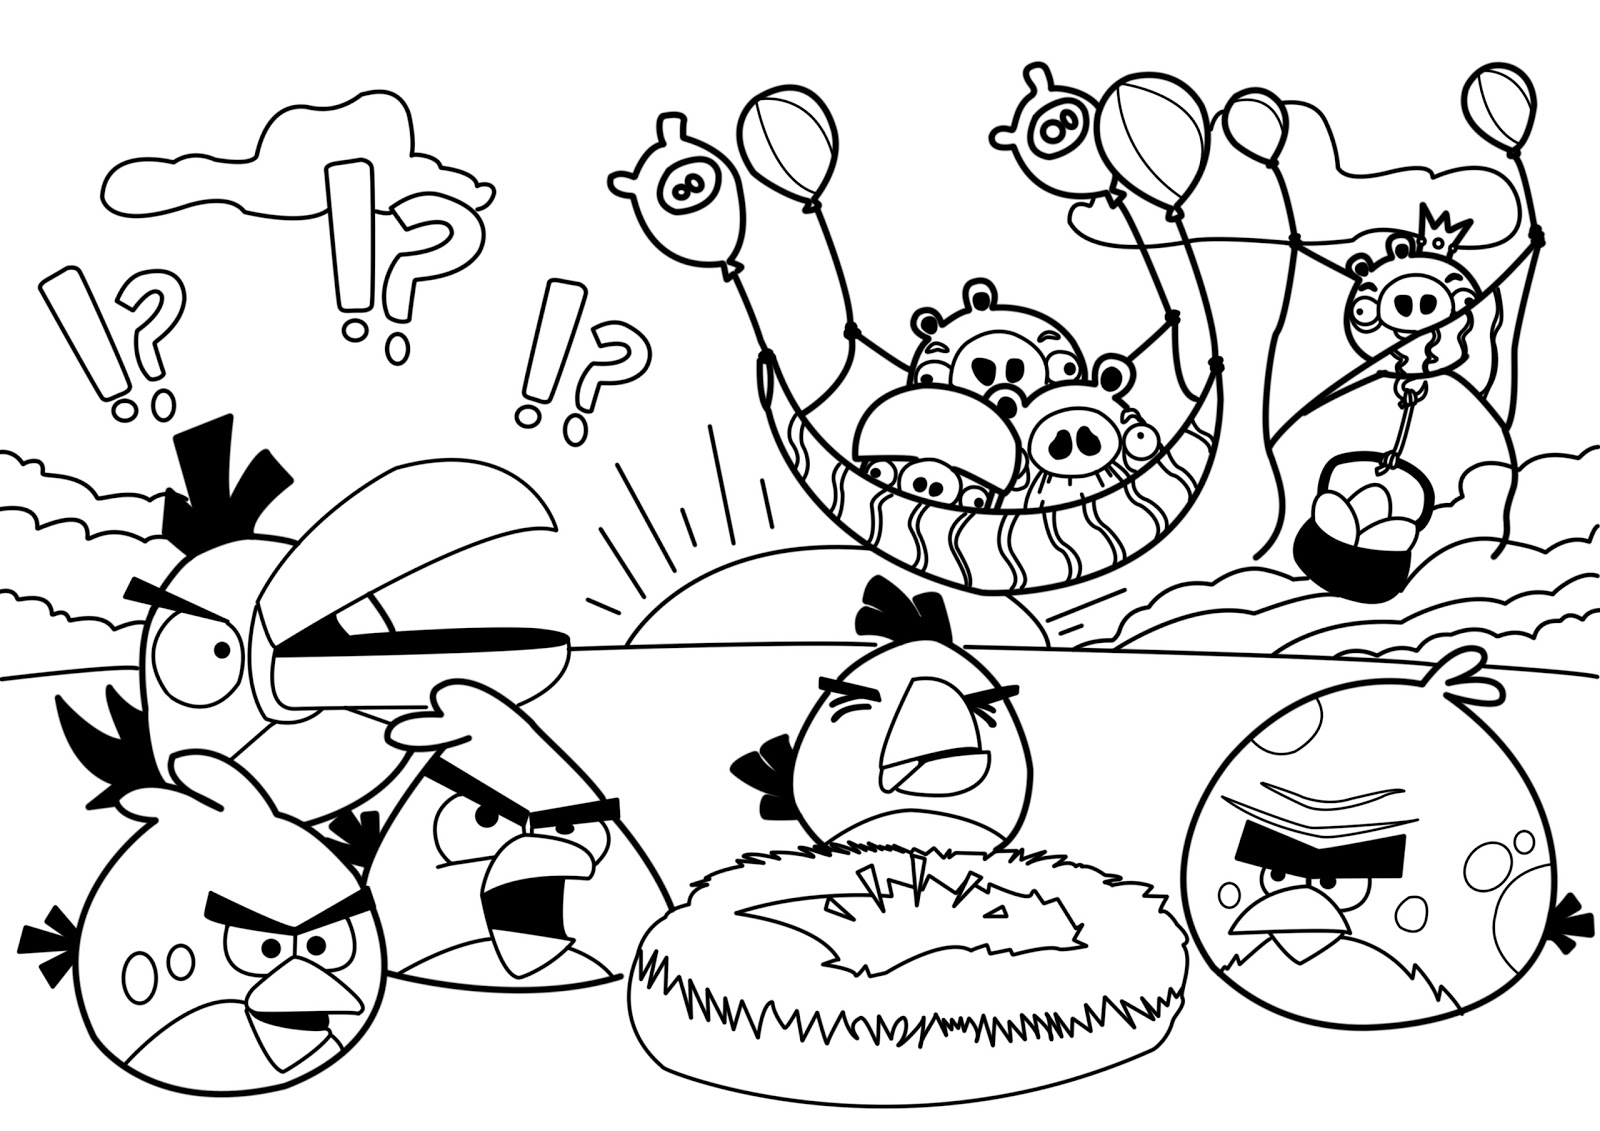 New Angry Birds Coloring Pages | All Free Coloring Page ...